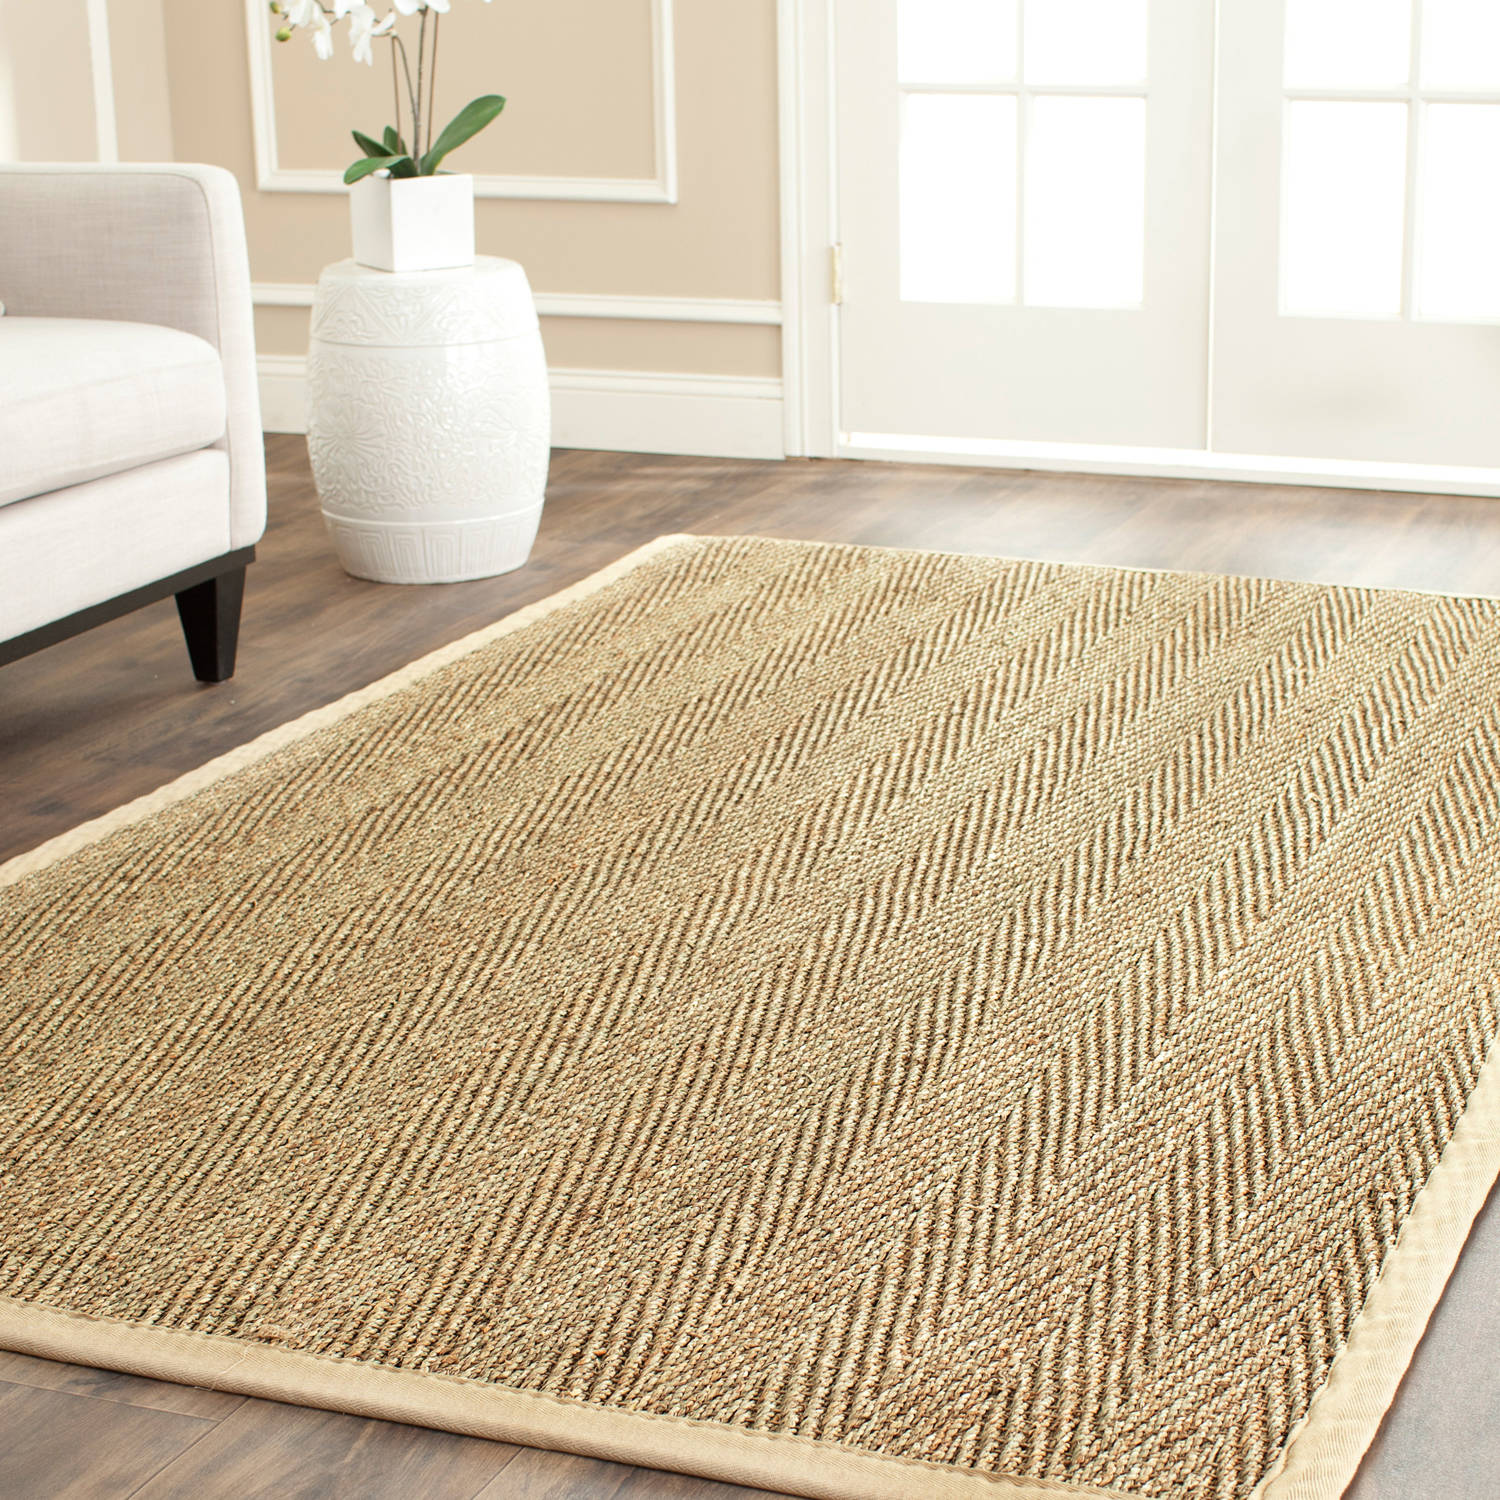 Safavieh Area Rug, Natural Fiber